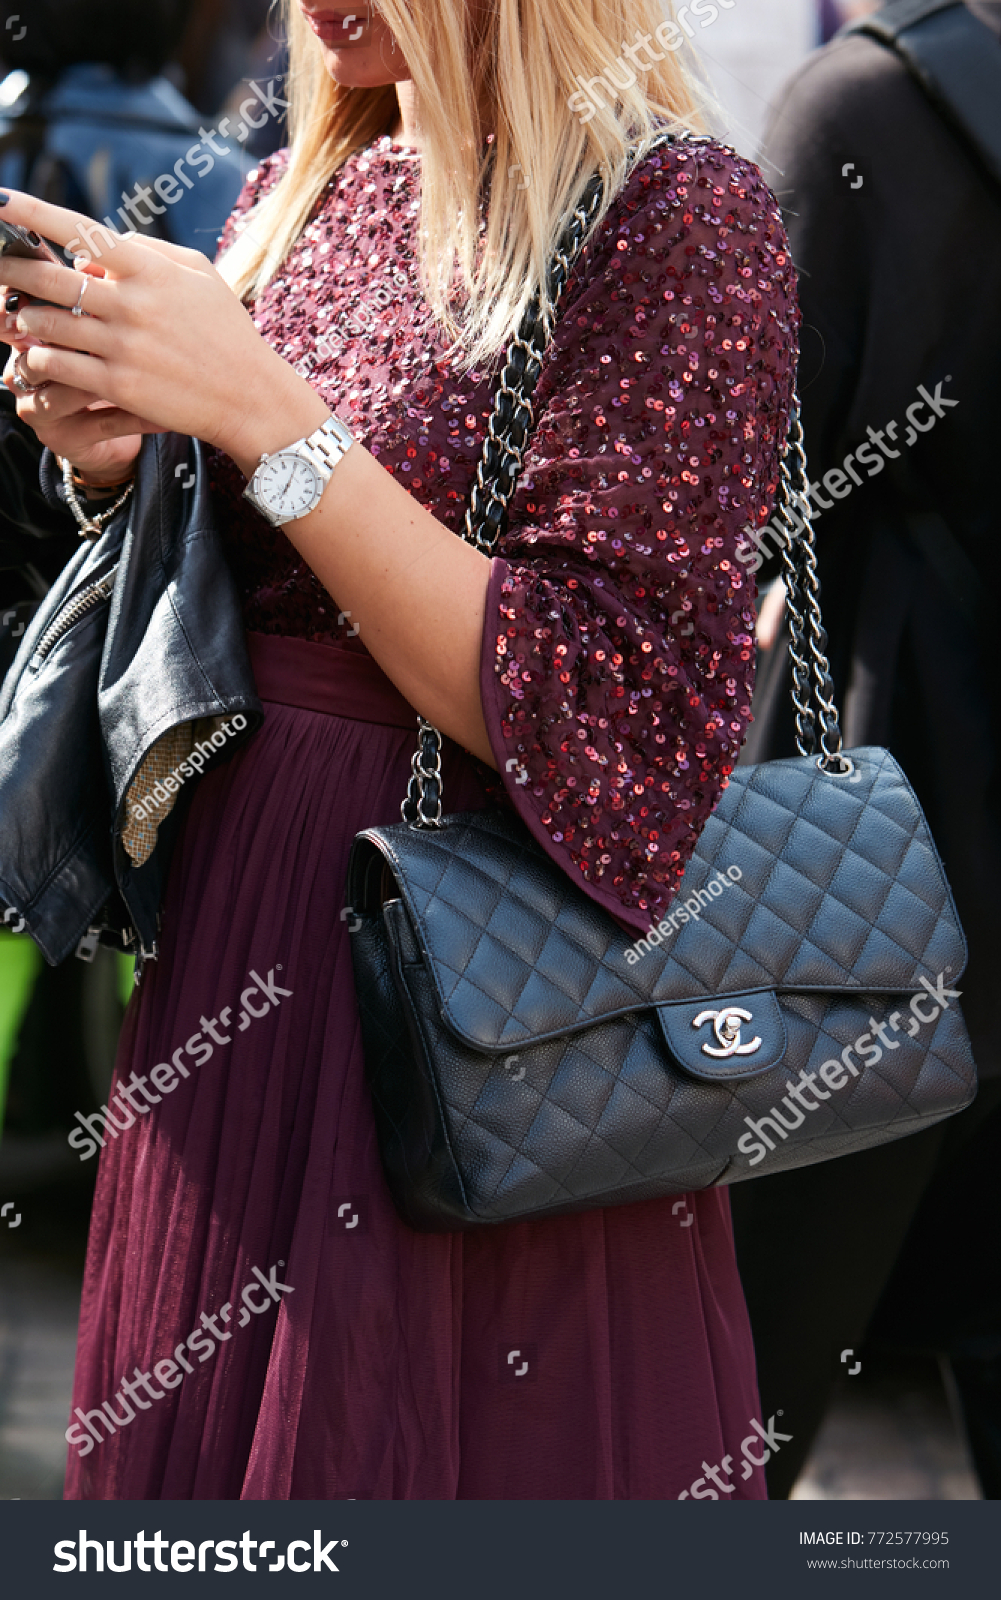 4539033e923aa9 MILAN - SEPTEMBER 23: Woman with Rolex watch, Chanel bag and dark red sequin